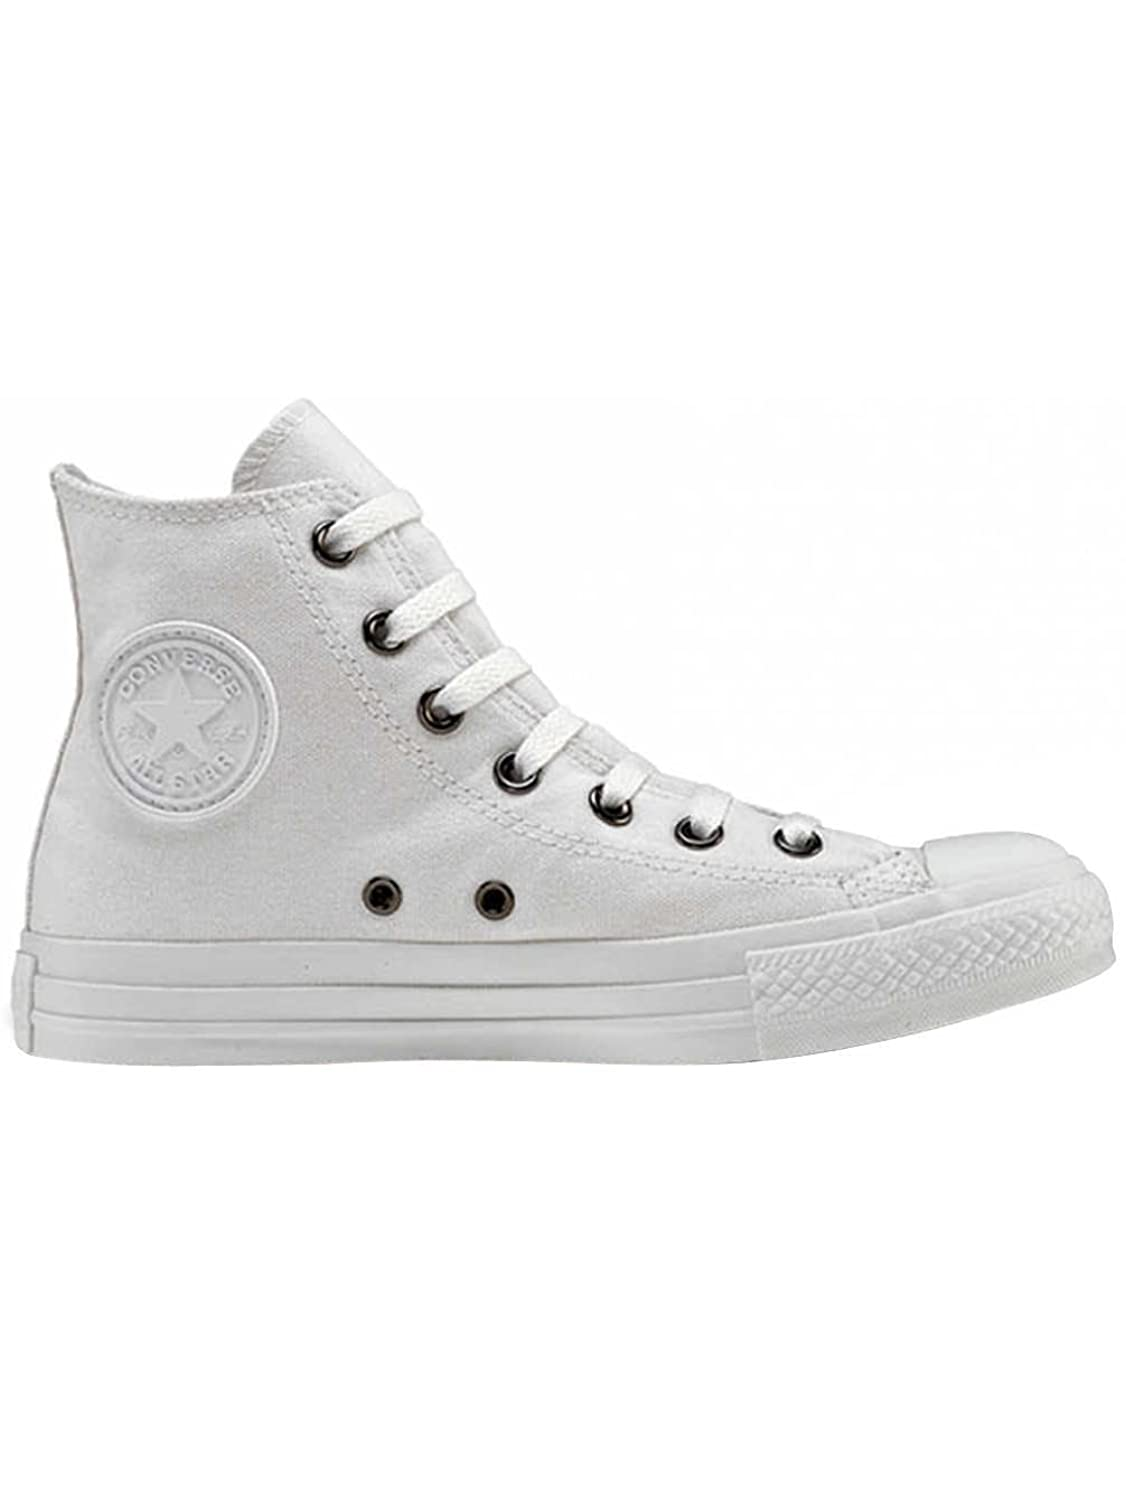 Converse Chuck Taylor All Star Seasonal, Sneakers Hautes Mixte Adulte